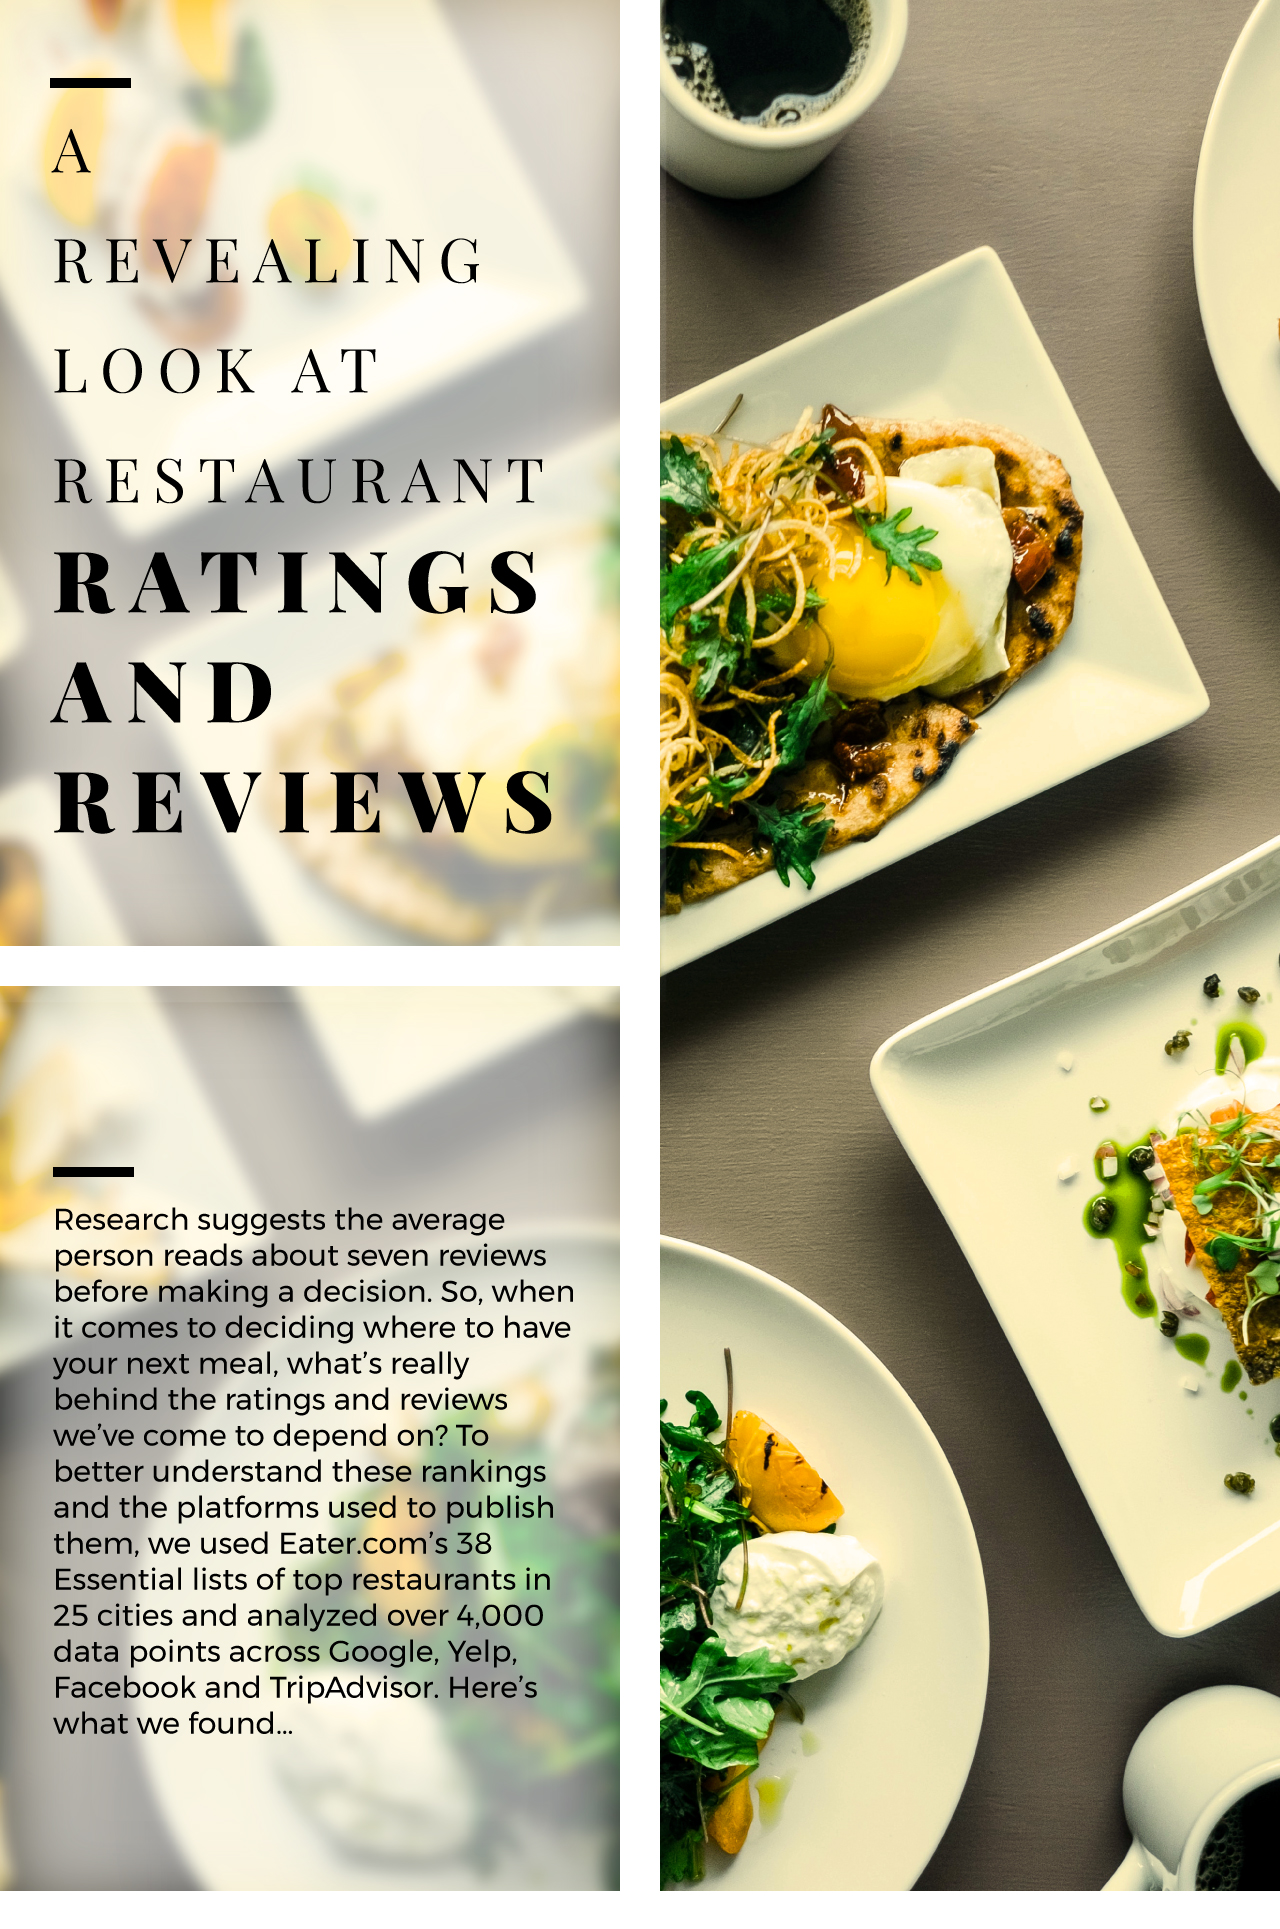 Restaurant Ratings and Reviews